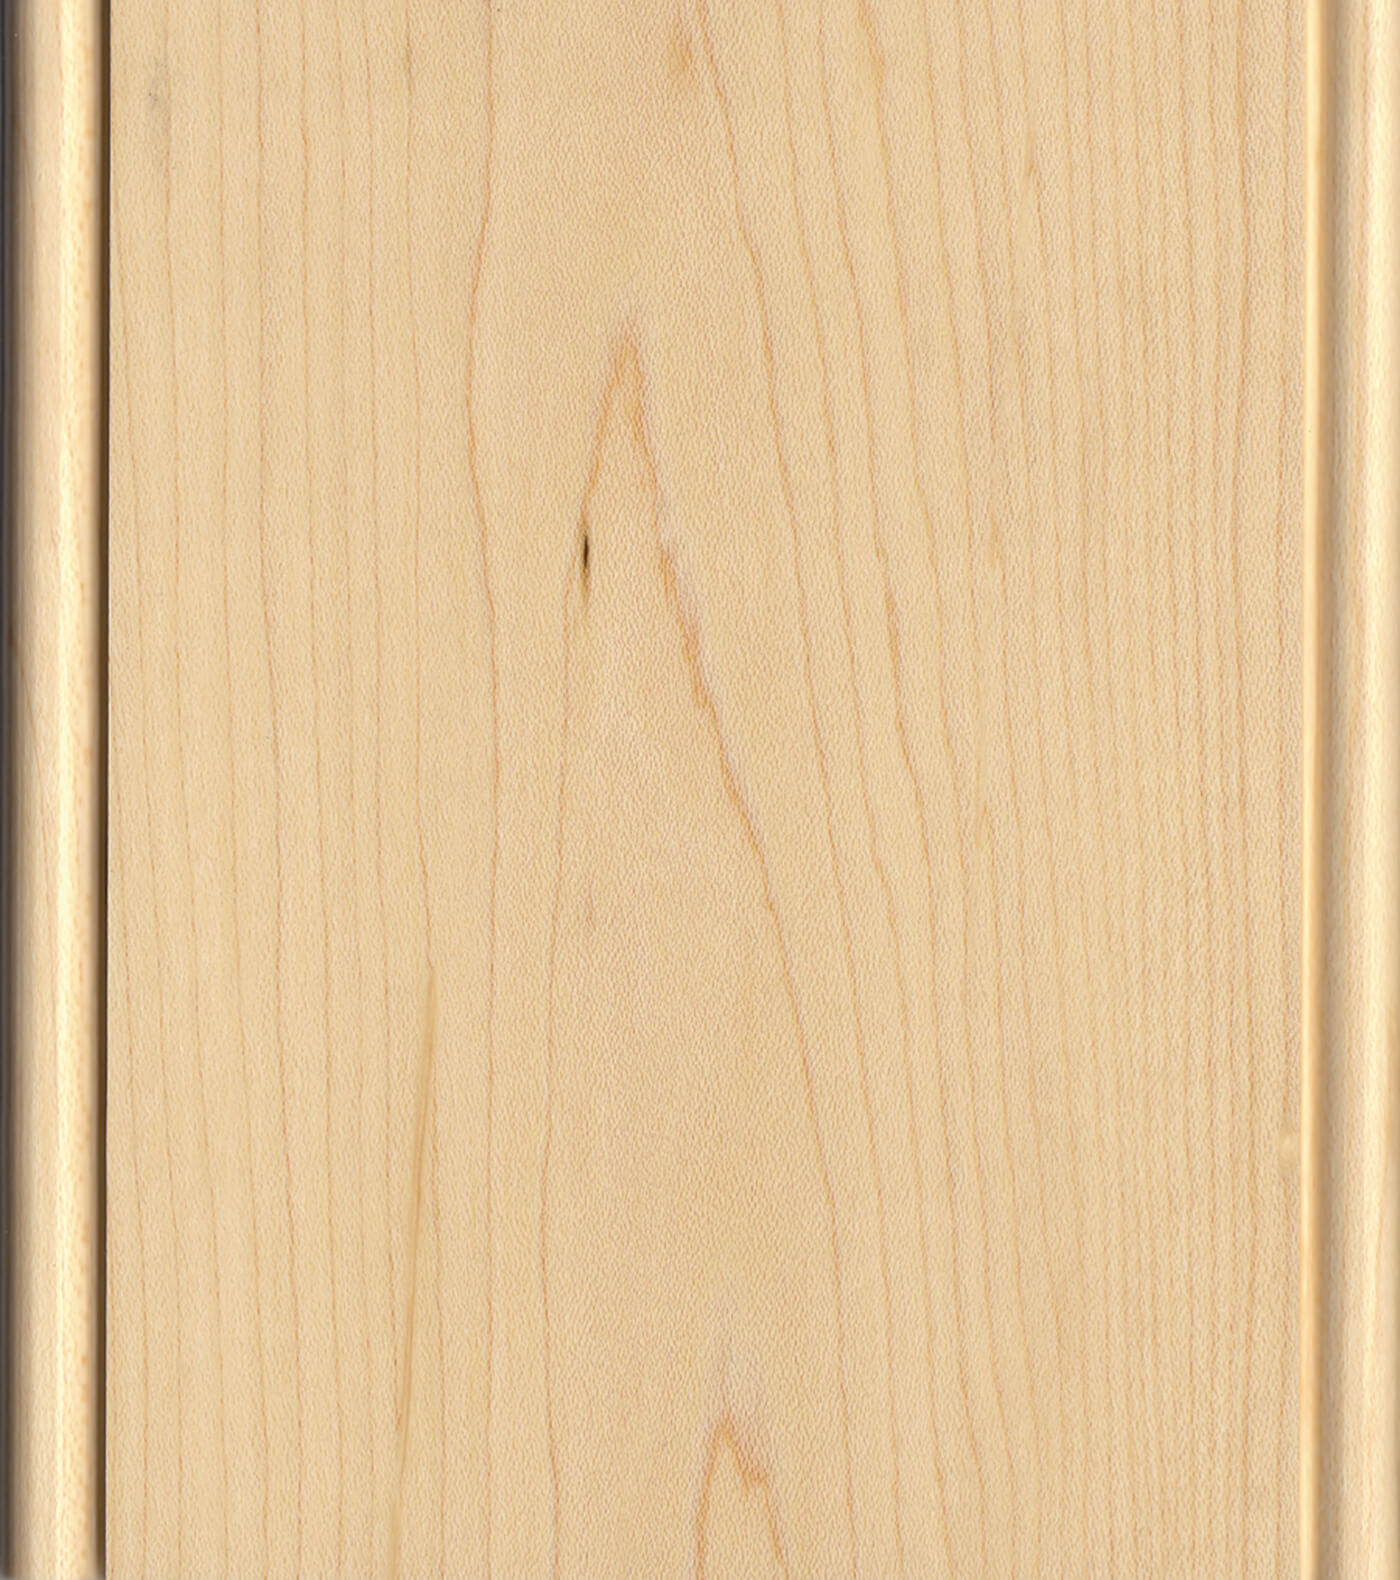 Natural Finish on Maple